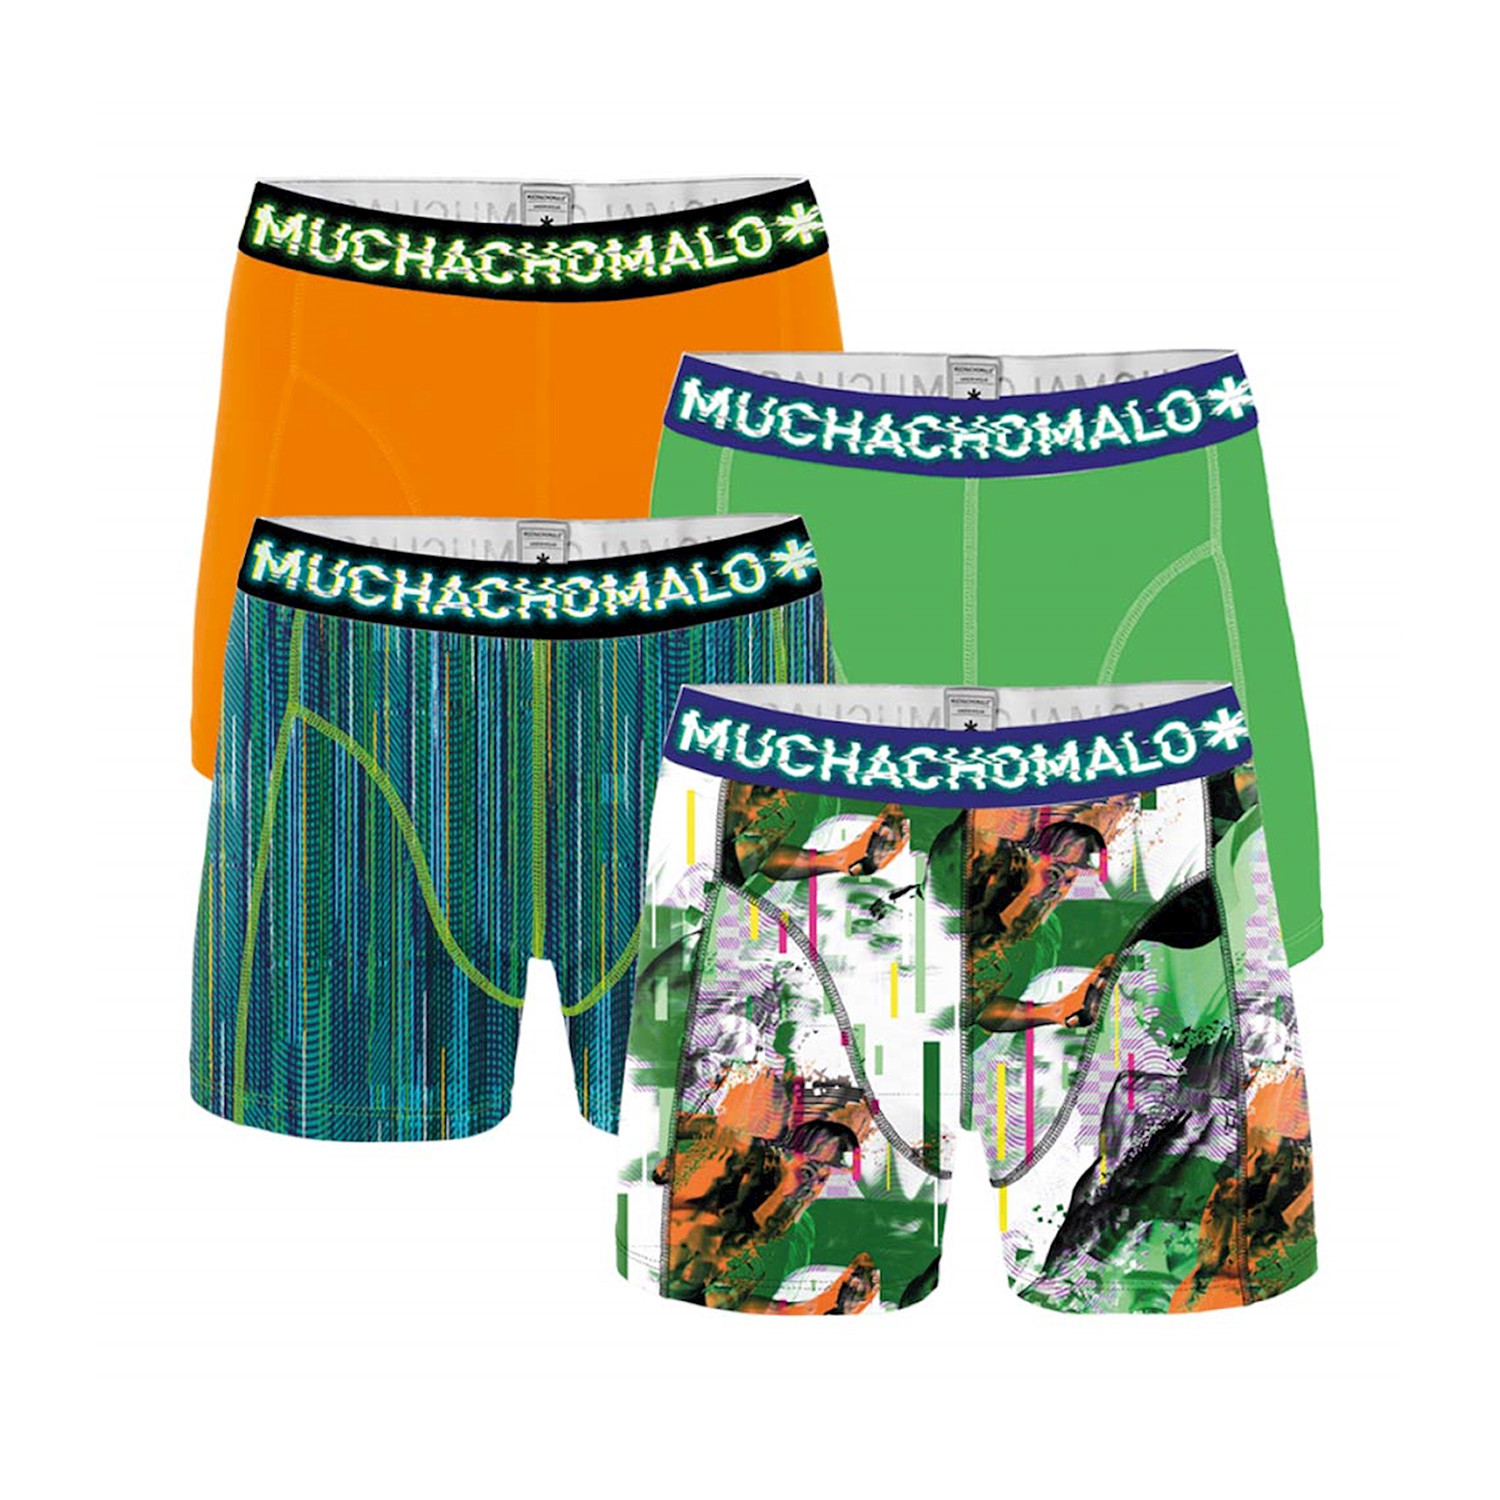 293dd495cc3ef Life is a Glitch // 4-Pack (S) - Muchachomalo - Touch of Modern